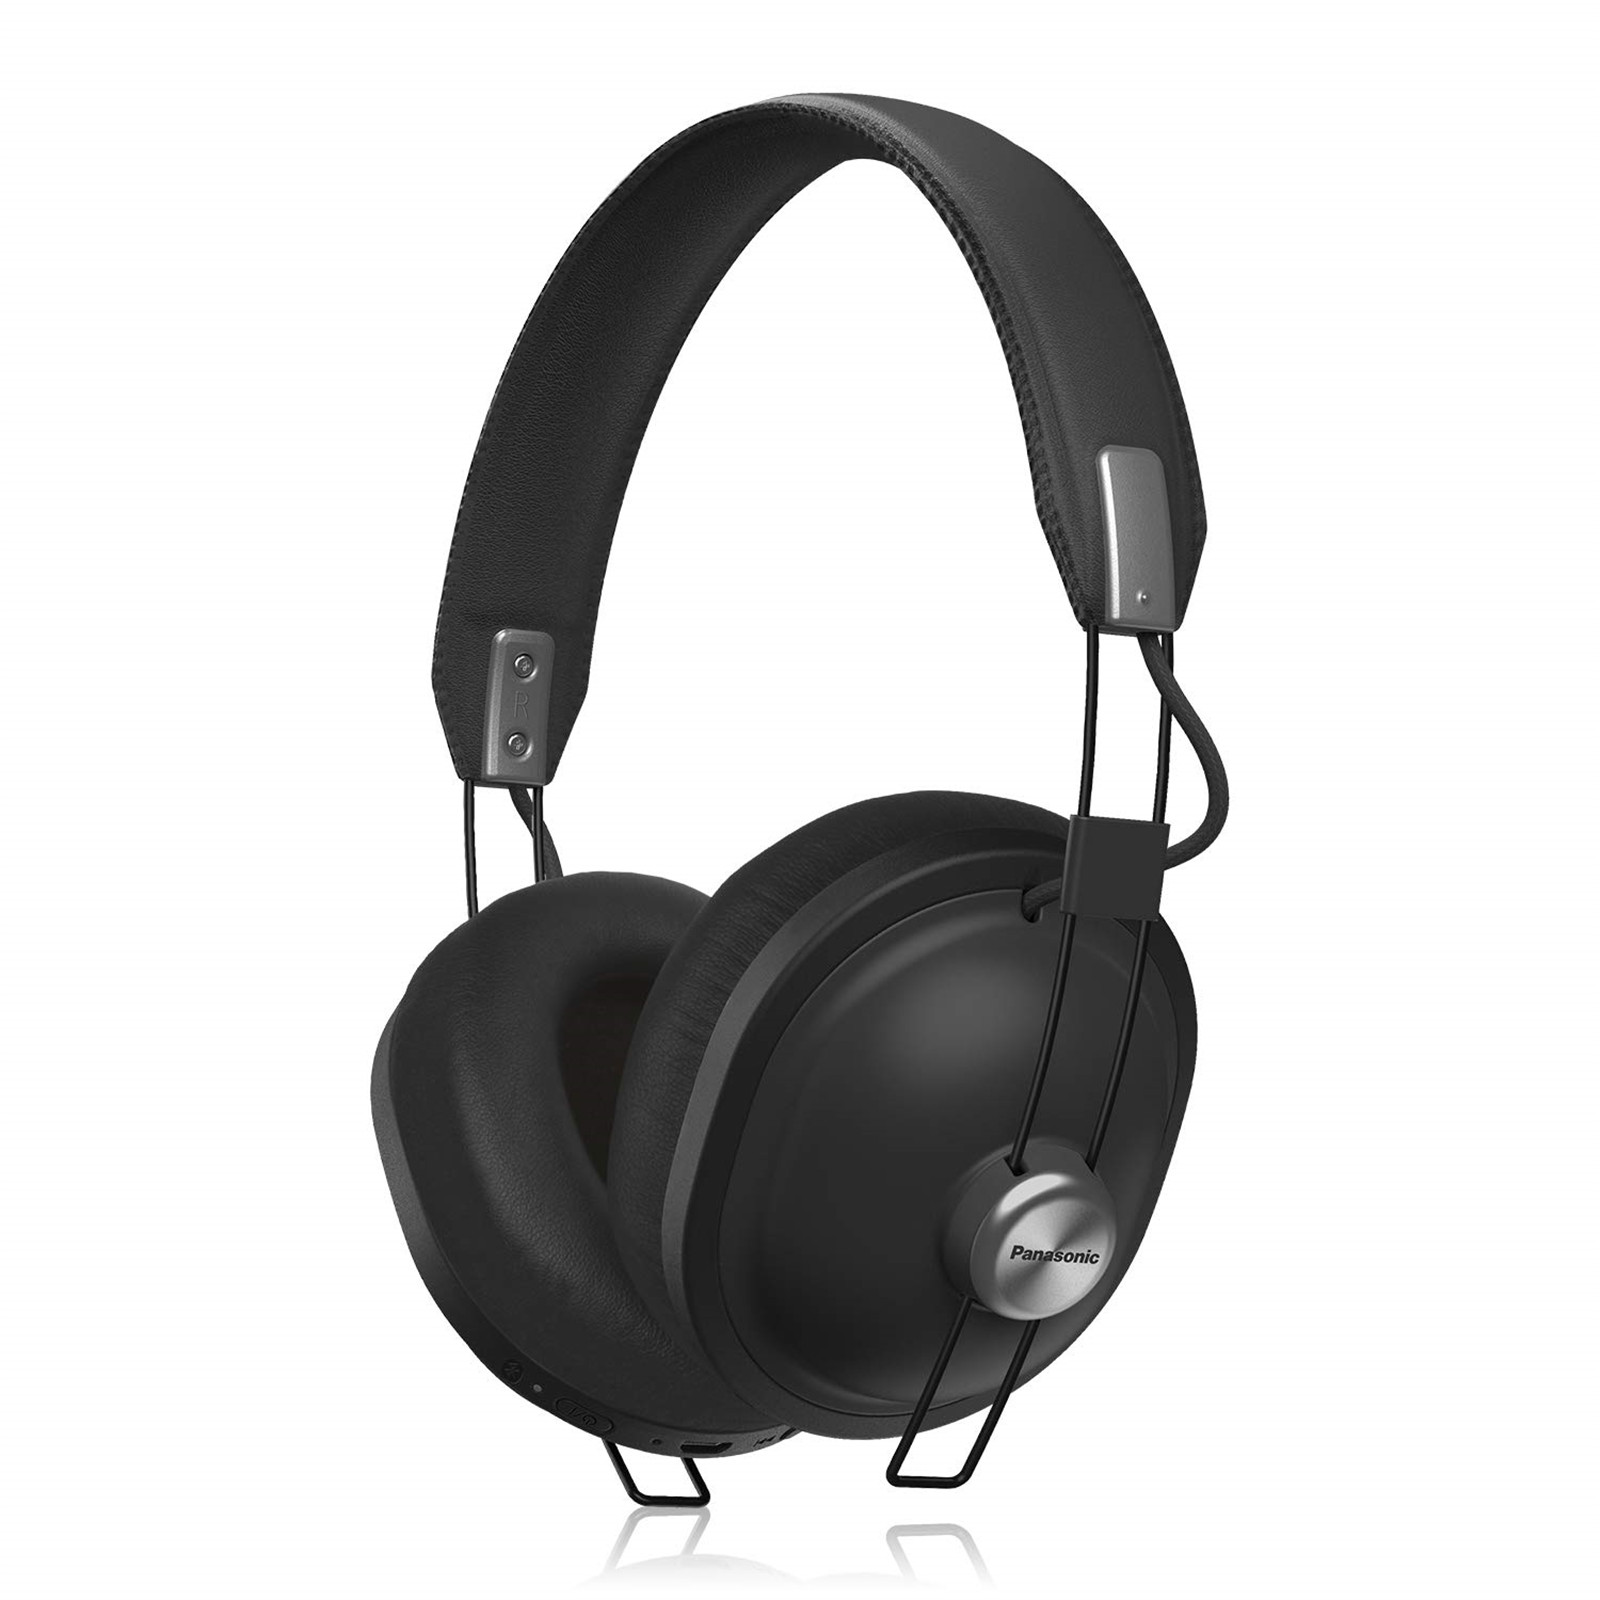 23abaabedab Panasonic RP-HTX80 Wireless Bluetooth Over-Ear Headphones - Black - Retro  style, 24 hours wireless playback, superb comfort, 40mm drivers for vibrant  sound